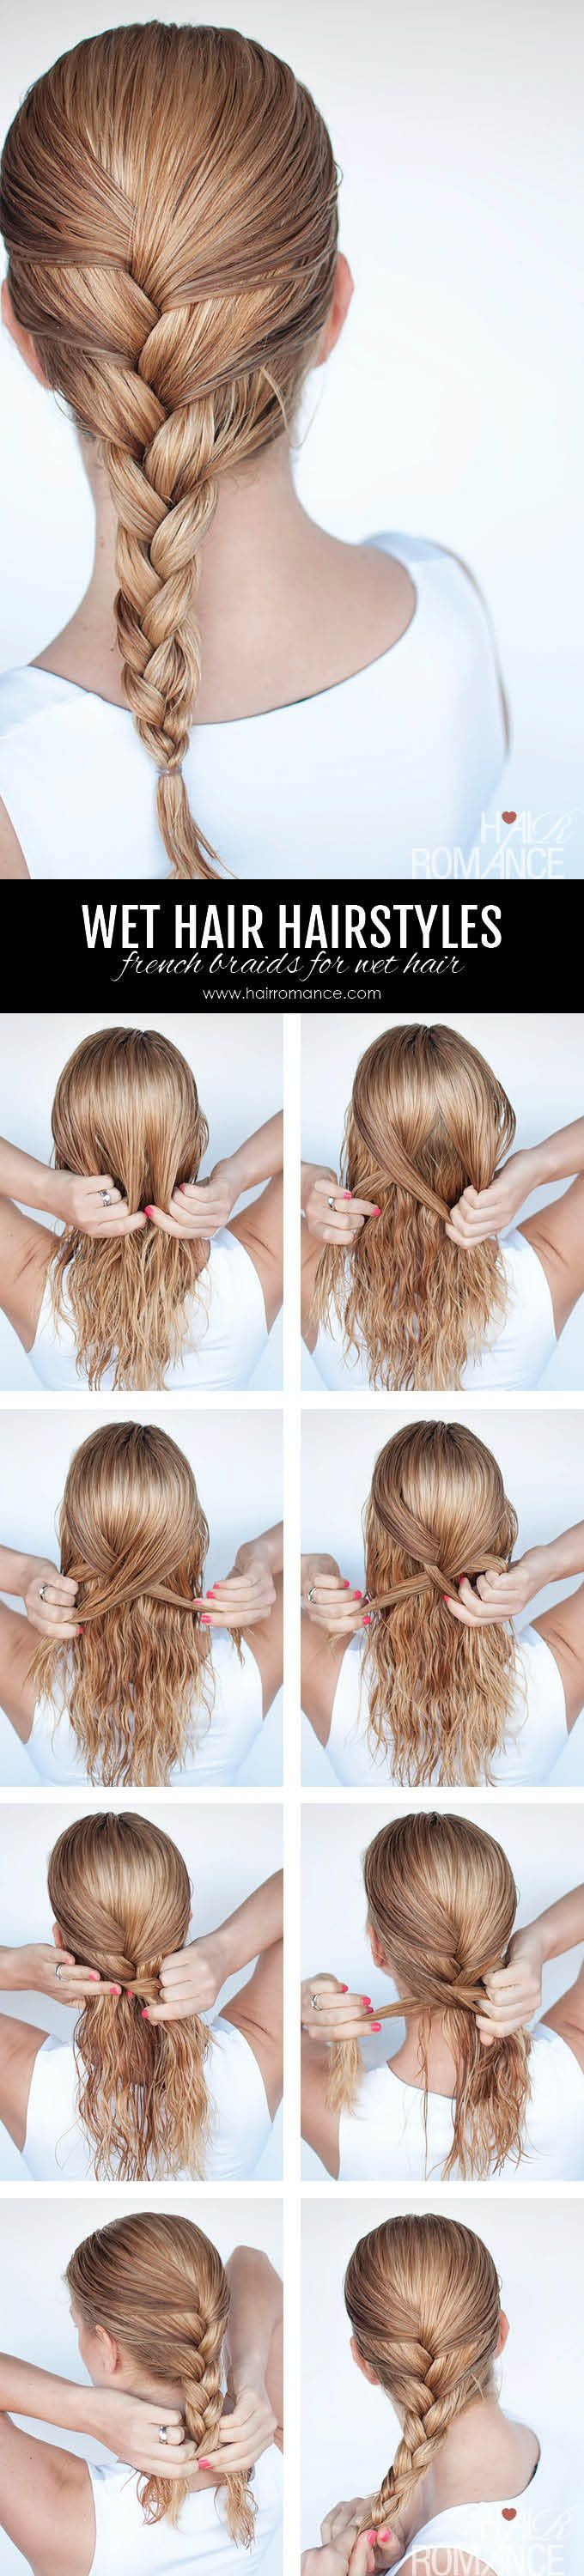 Hairstyles for wet hair - French braid tutorial